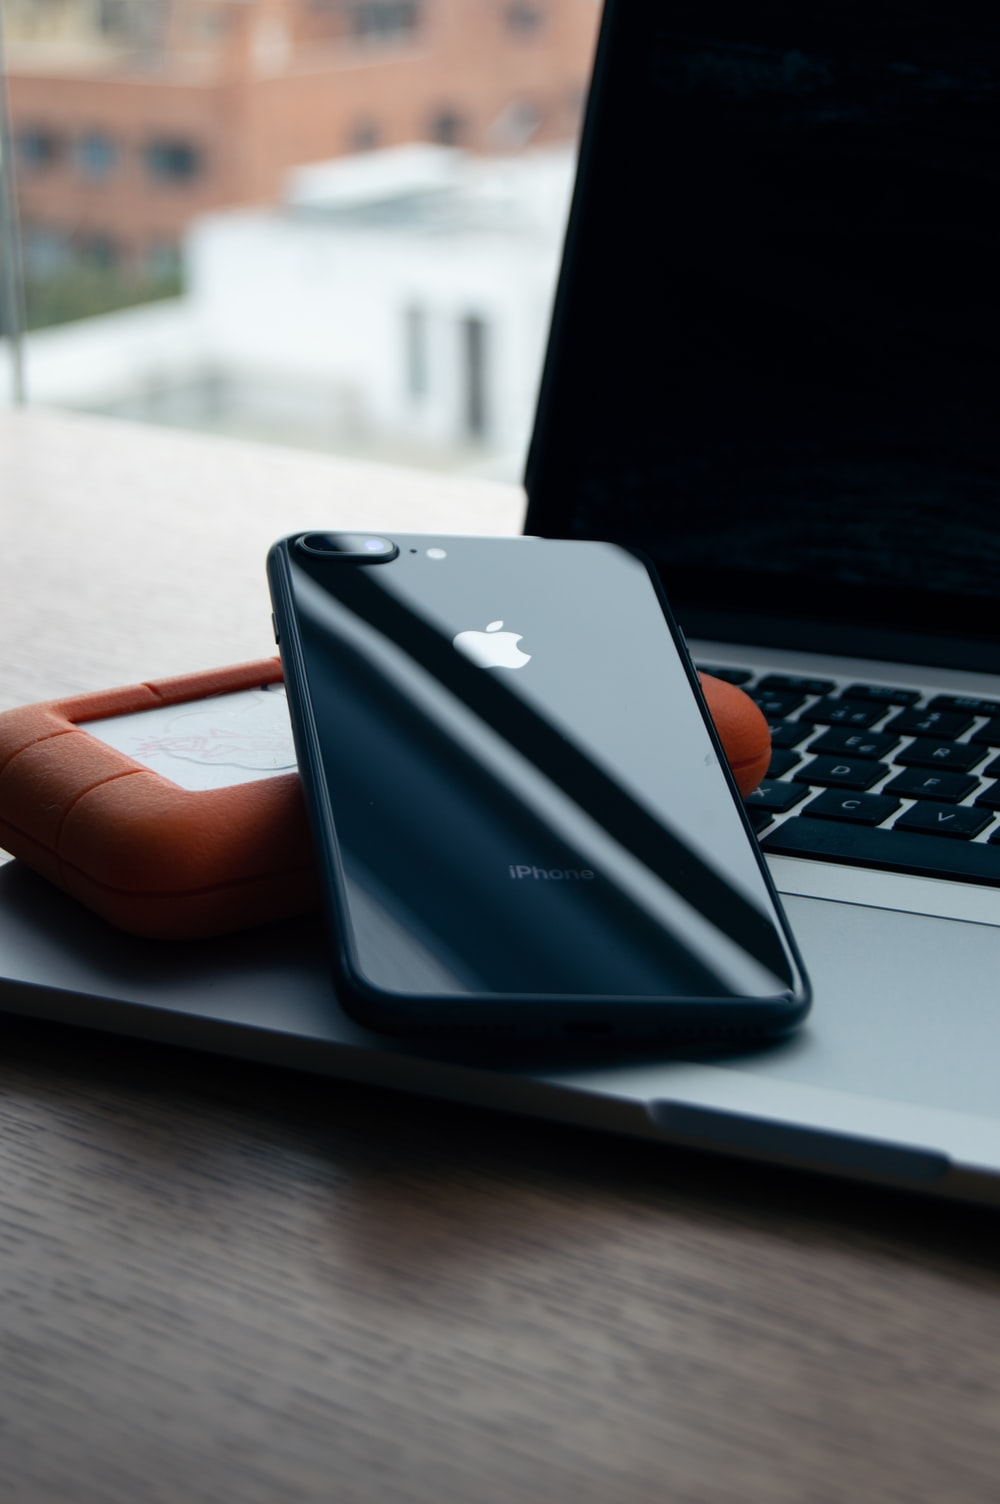 space gray iPhone 8 Plus on brown case